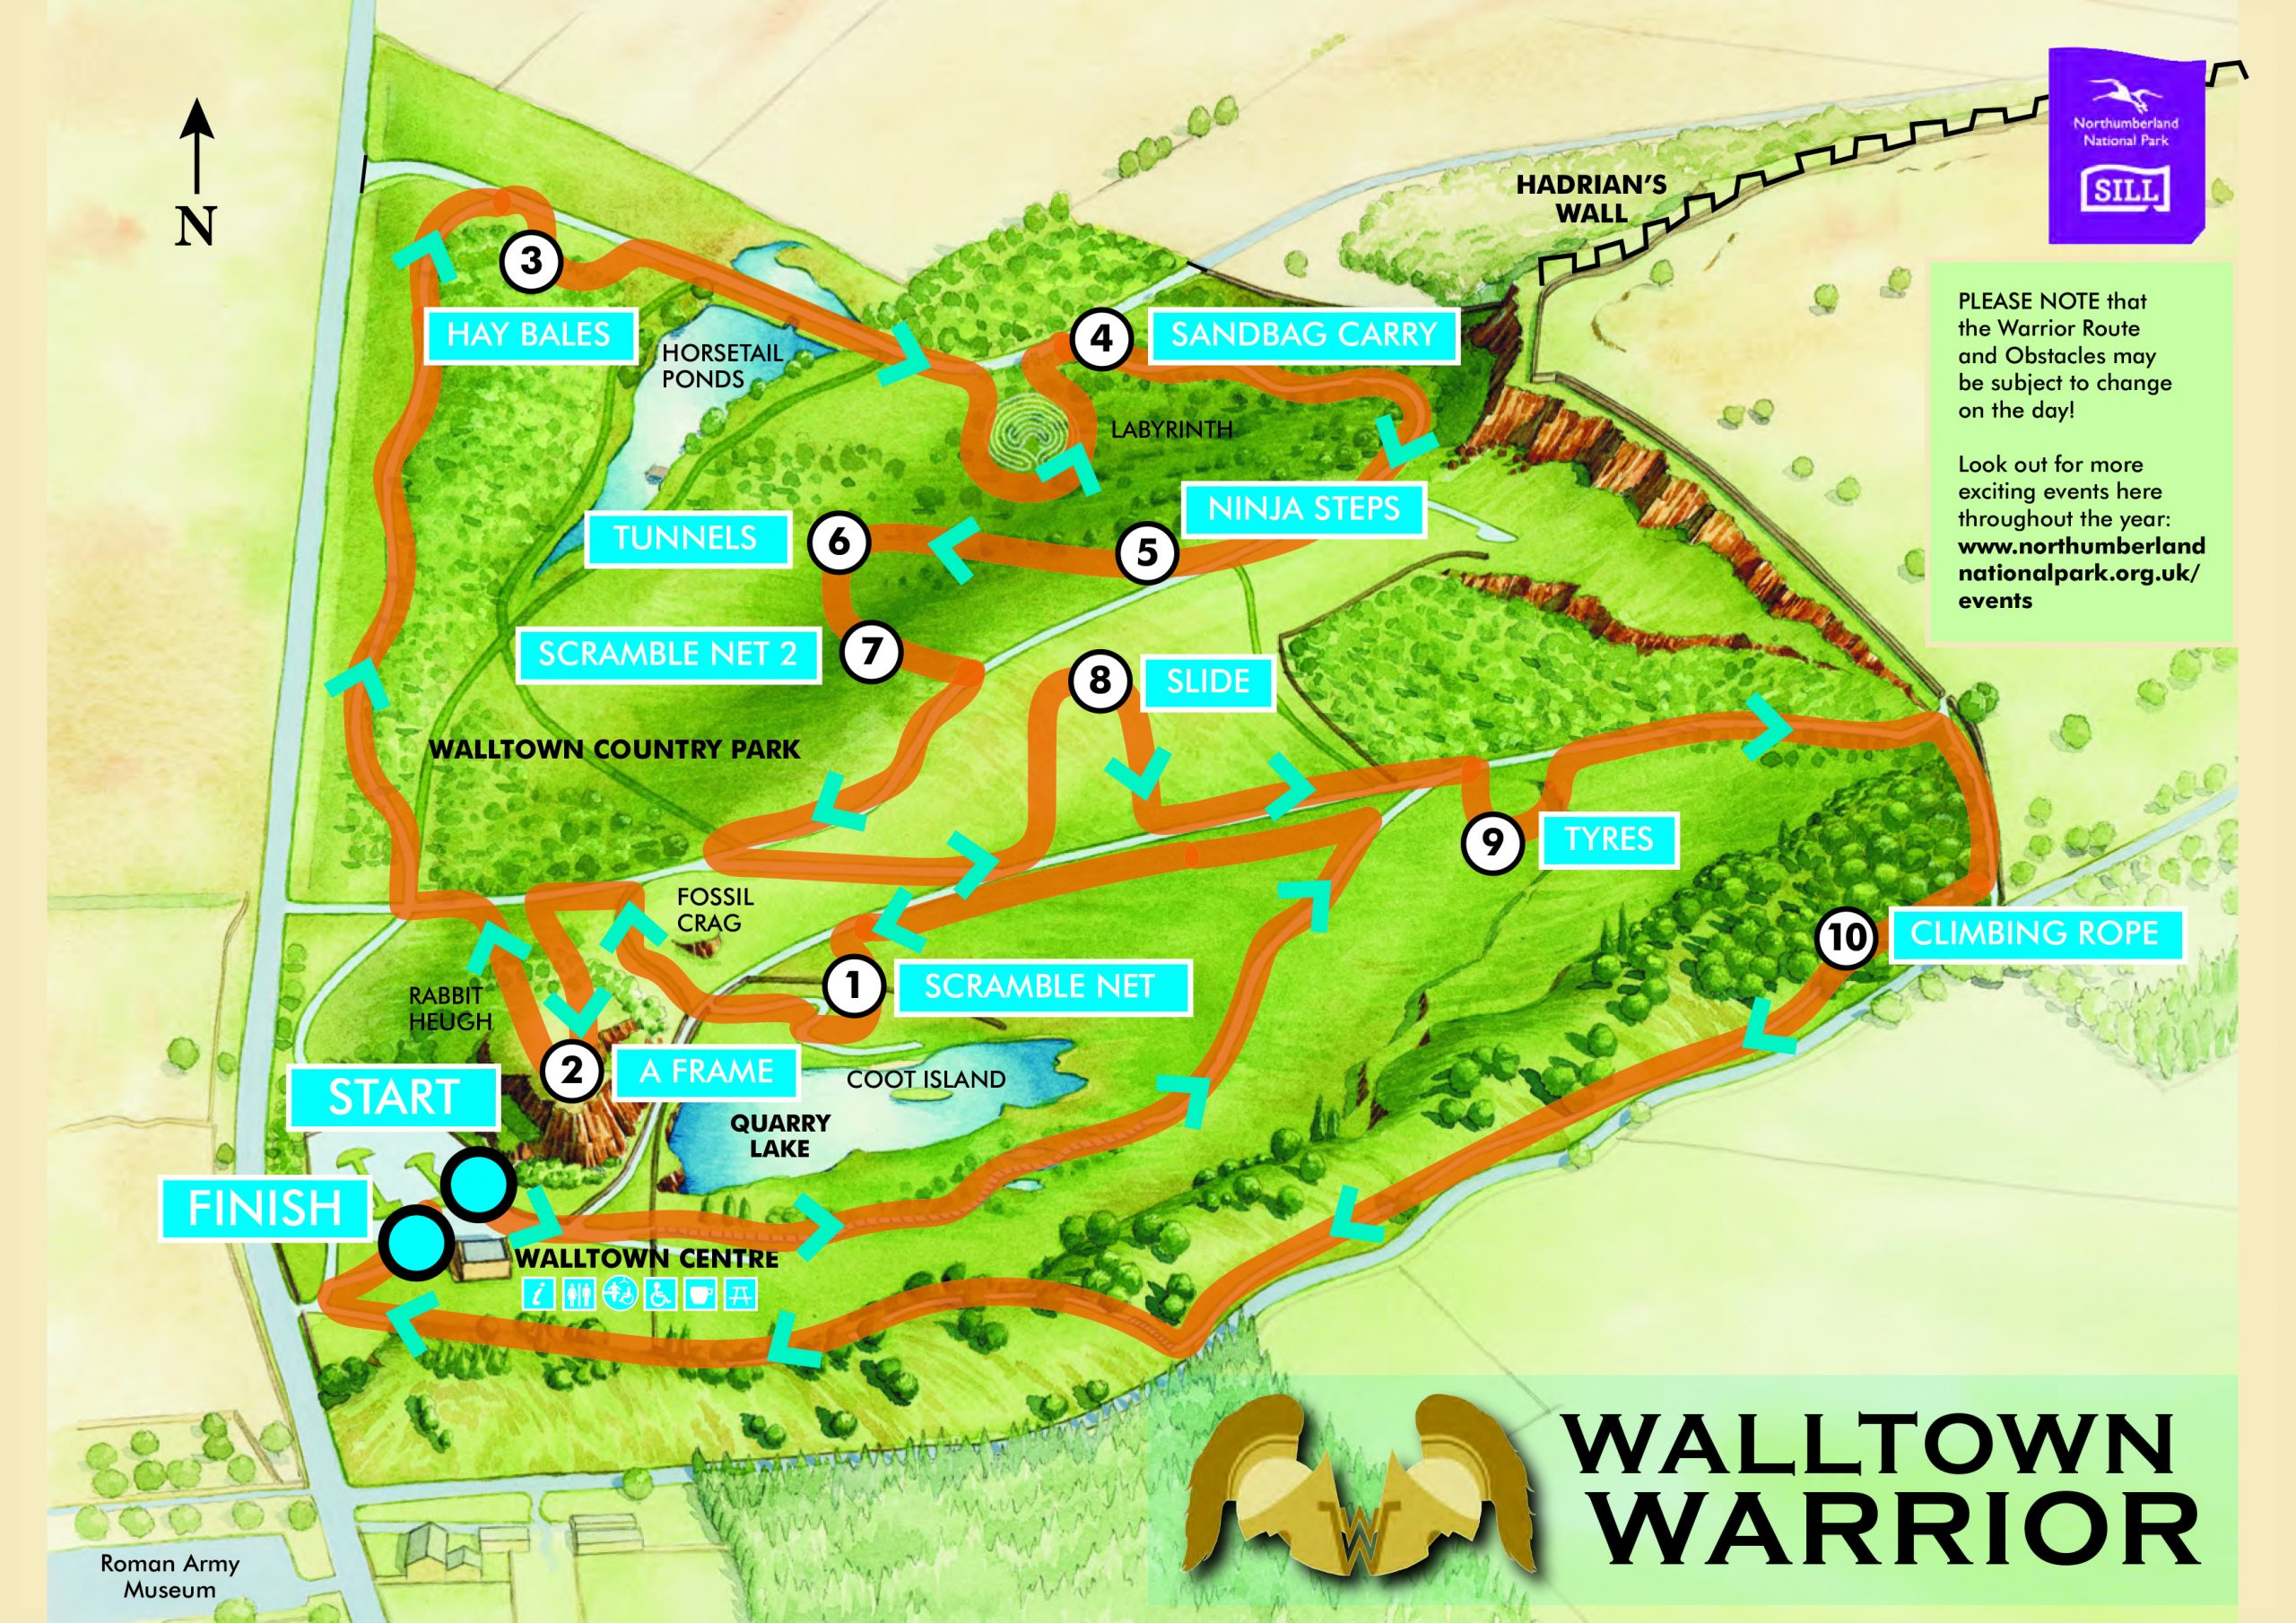 A graphic map showing the routes of the Walltown Warrior event at Walltown in the Northumberland National Park.